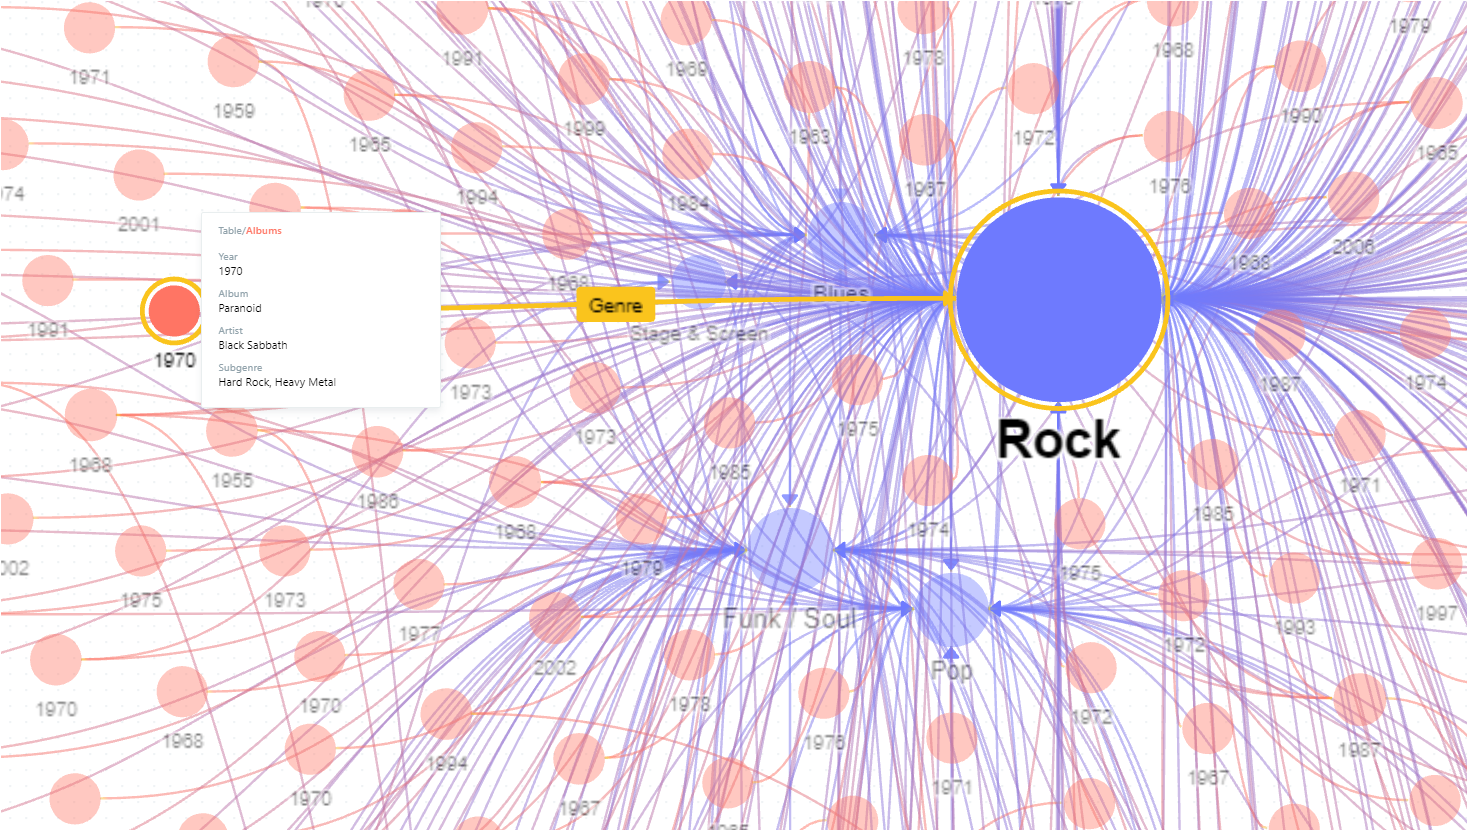 knowledge graph of music genres and their connected artists, albums, and songs